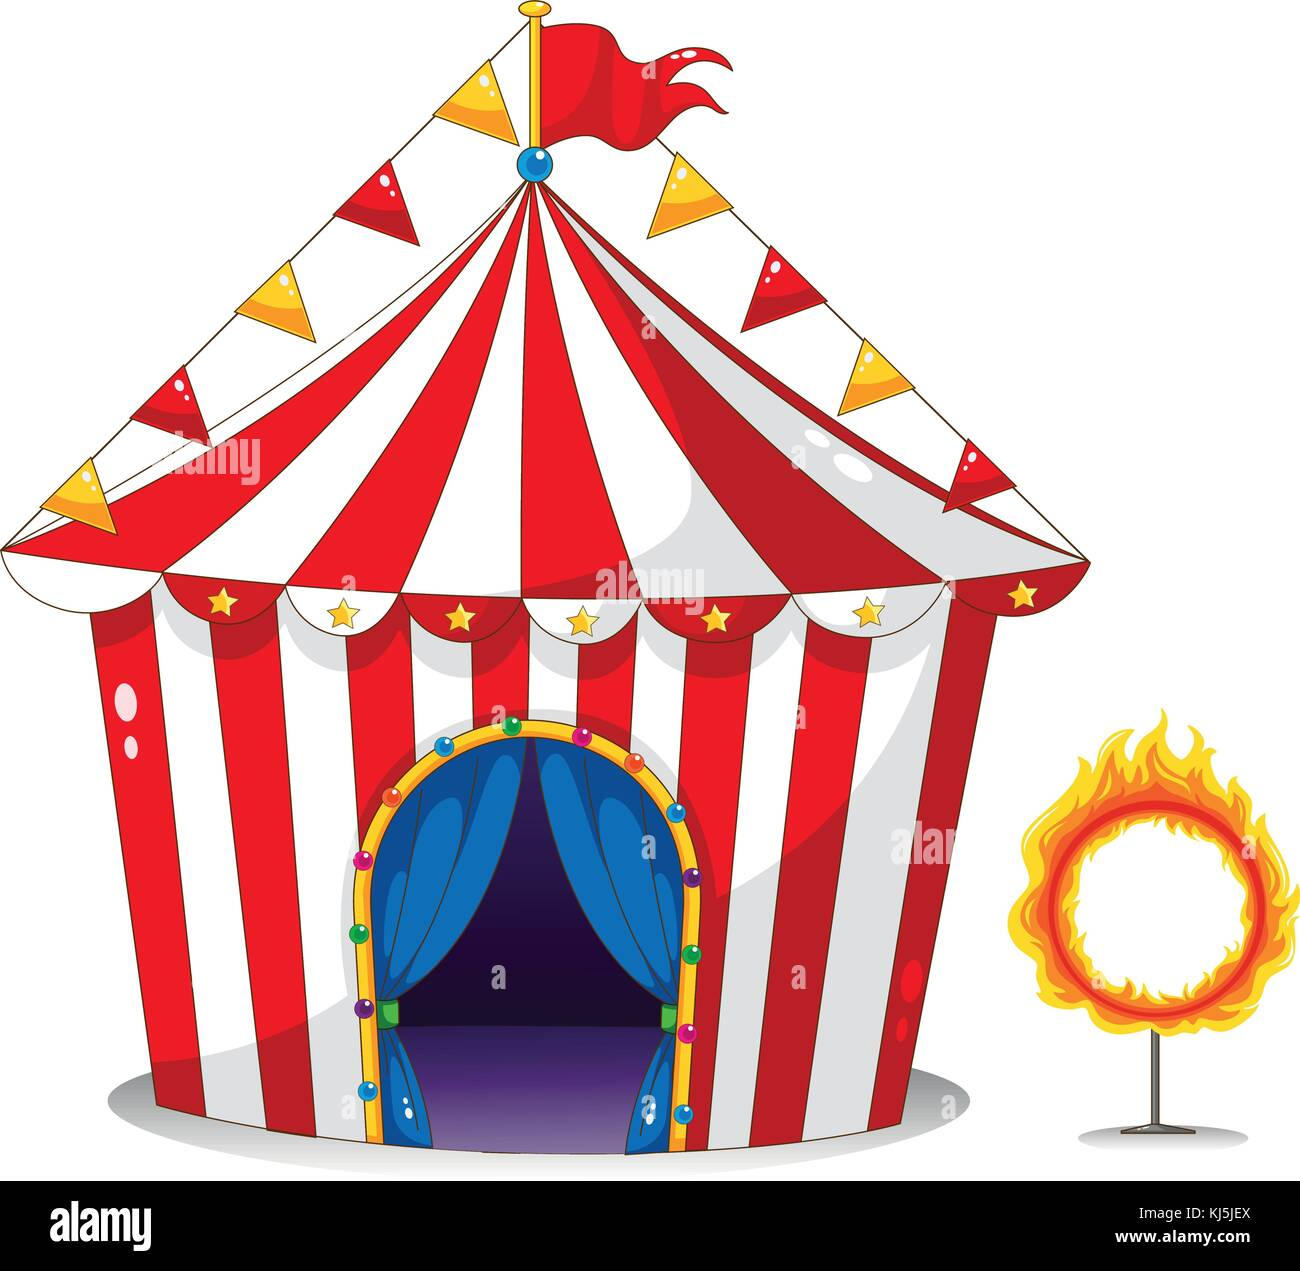 Illustration of a circus tent beside a ring of fire on a white background - Stock Image